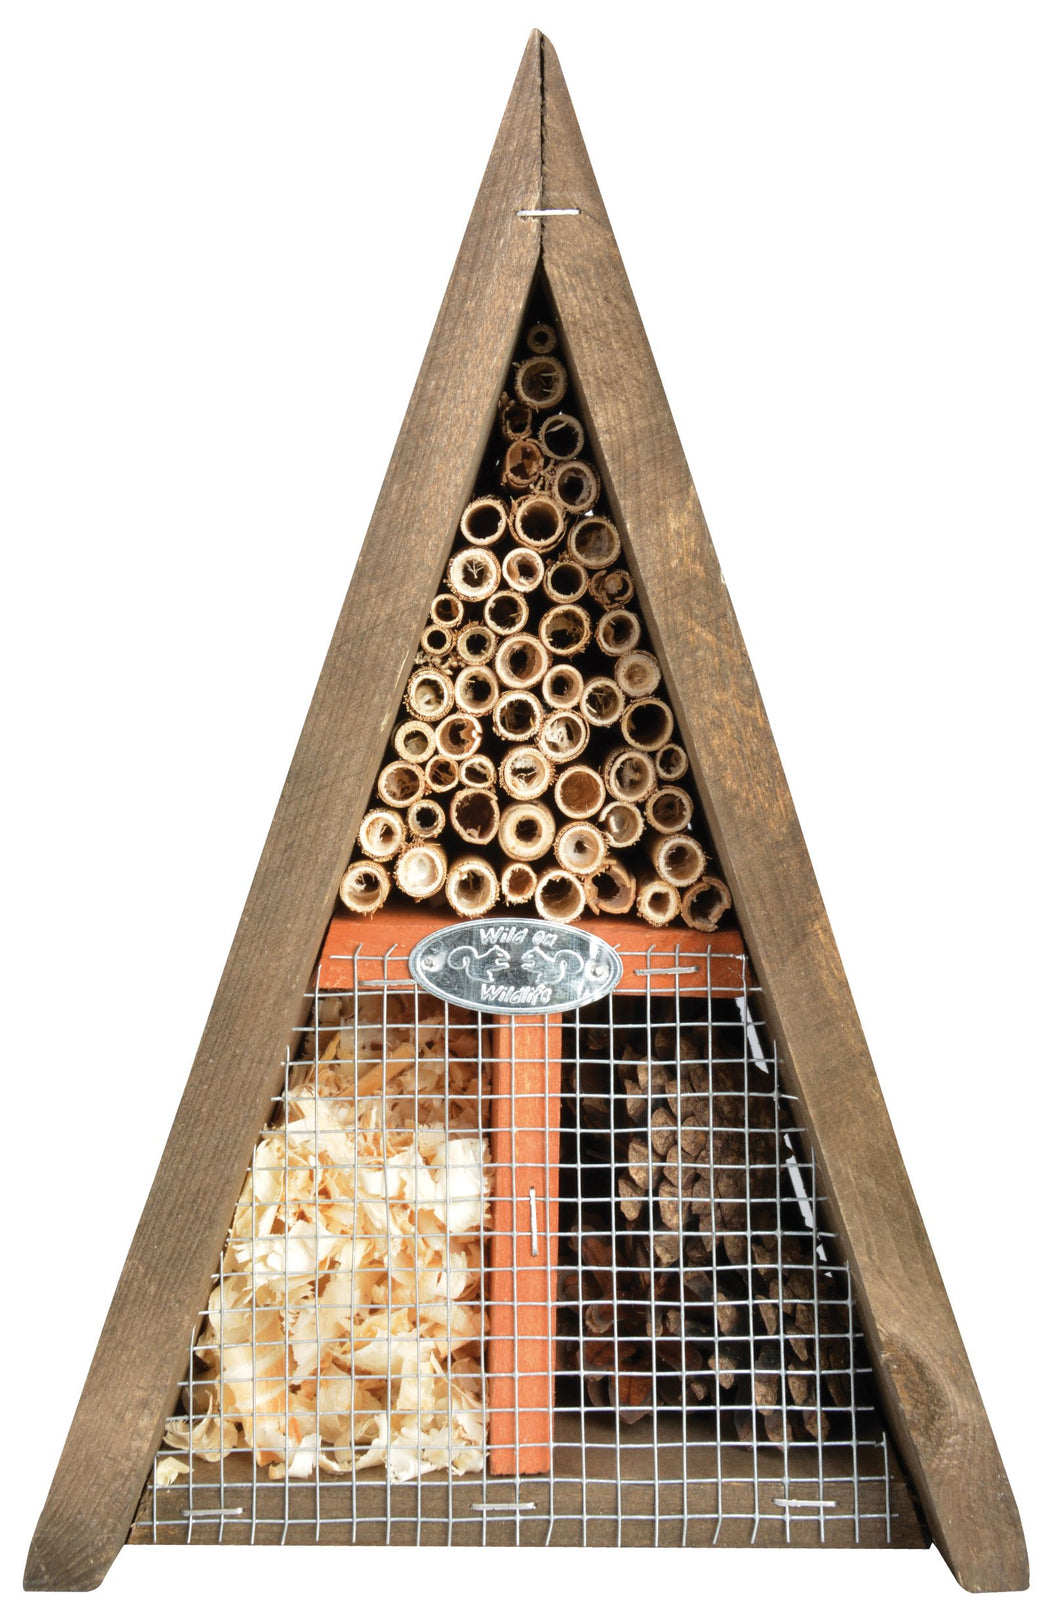 Insect hotel - Parkinson's shop